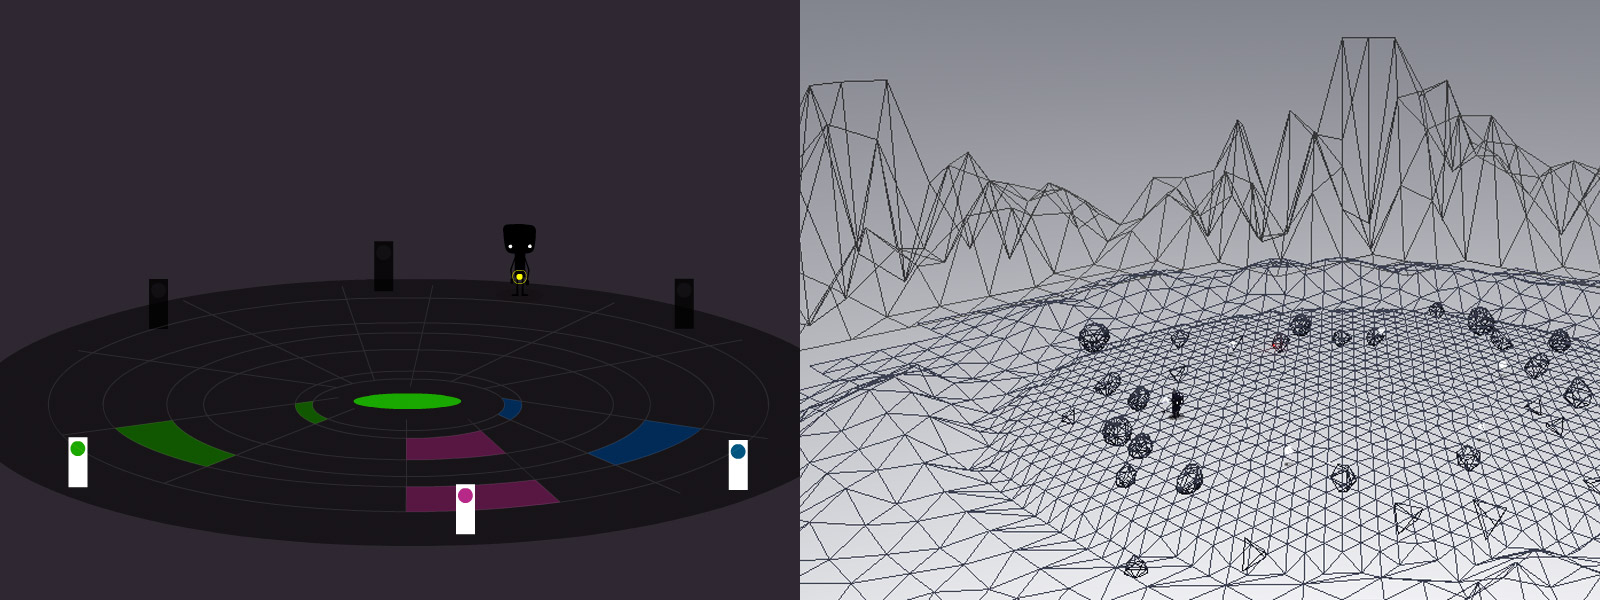 Sketches of the concept and the 3D scene